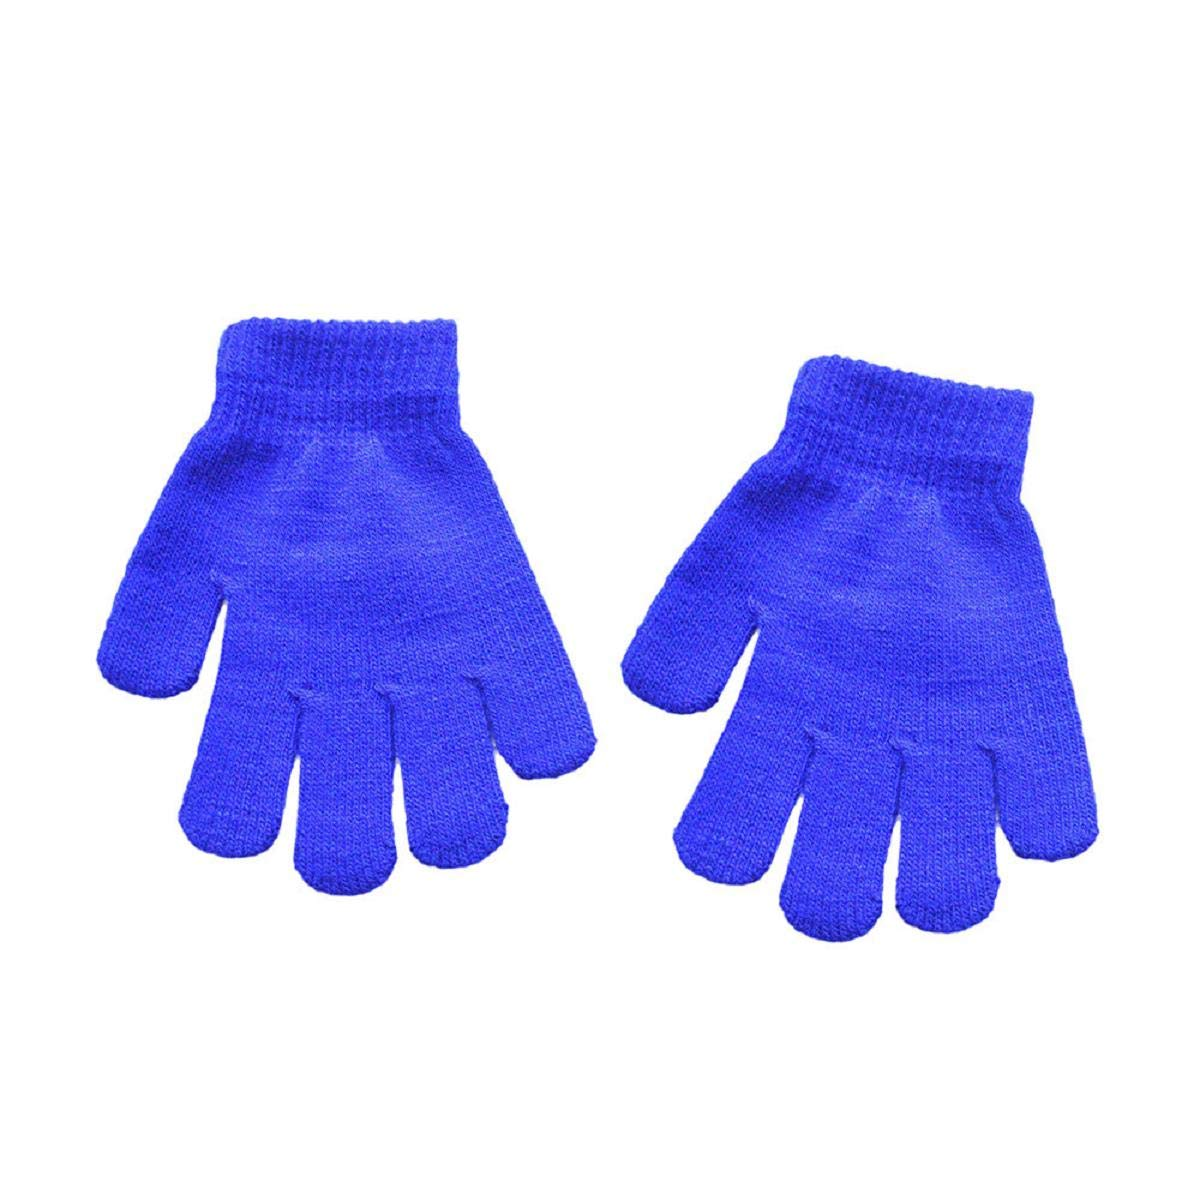 Birthday Gift /& Outdoor Winter Gloves Putars 1Pair Acrylic Infant Baby Cute Gloves -Solid Print Hot Girls Boys -Winter Warm Gloves